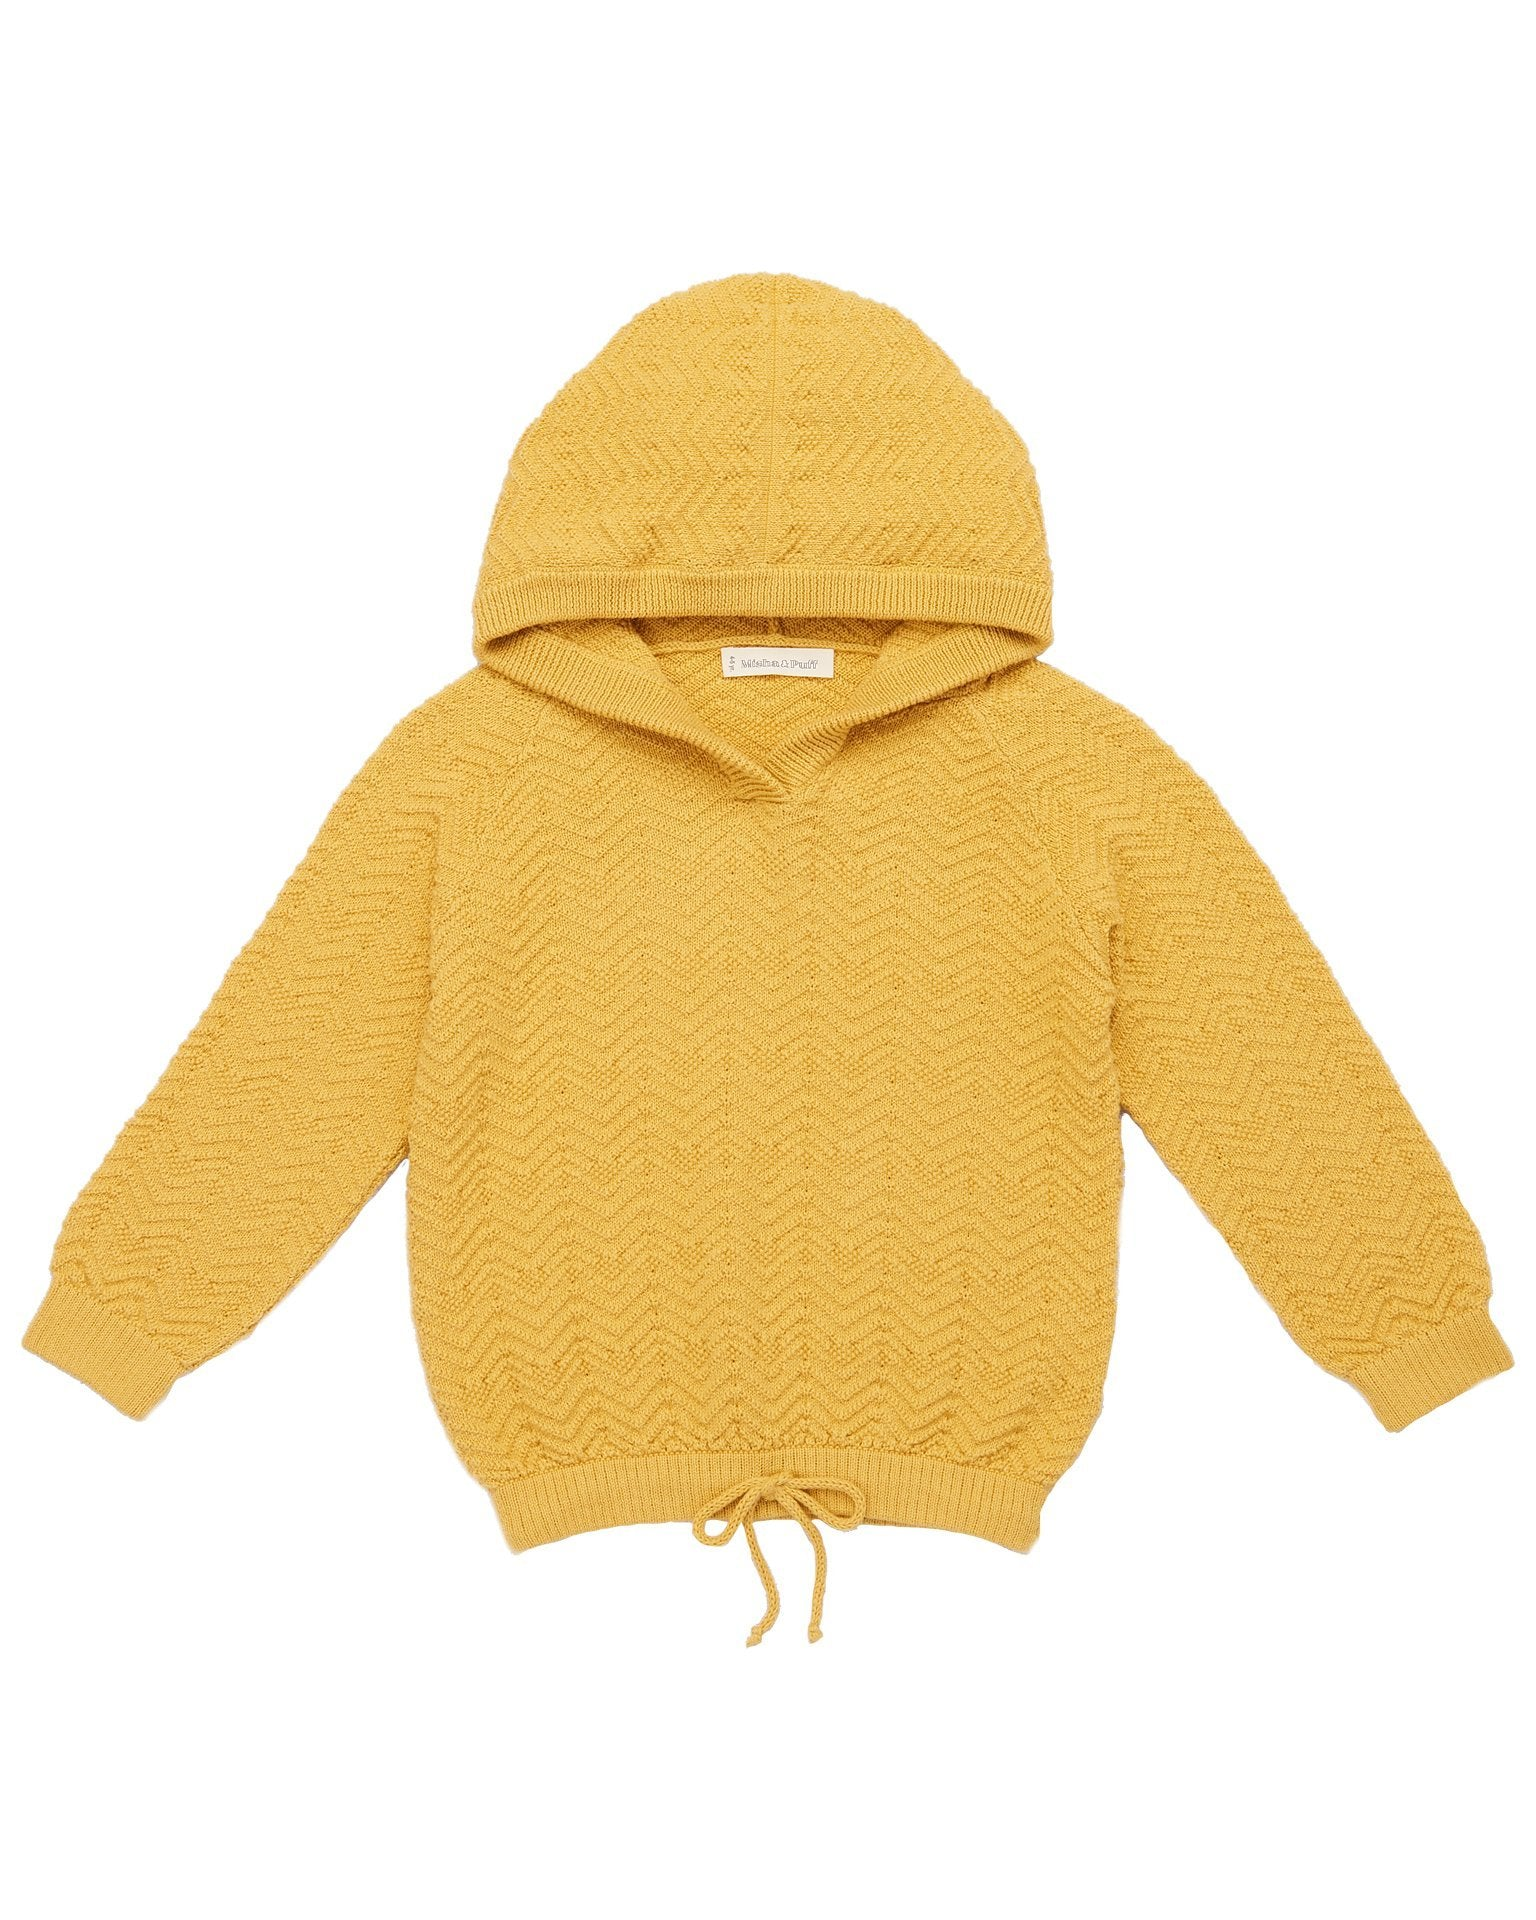 Little misha + puff girl chevron hoodie in ochre